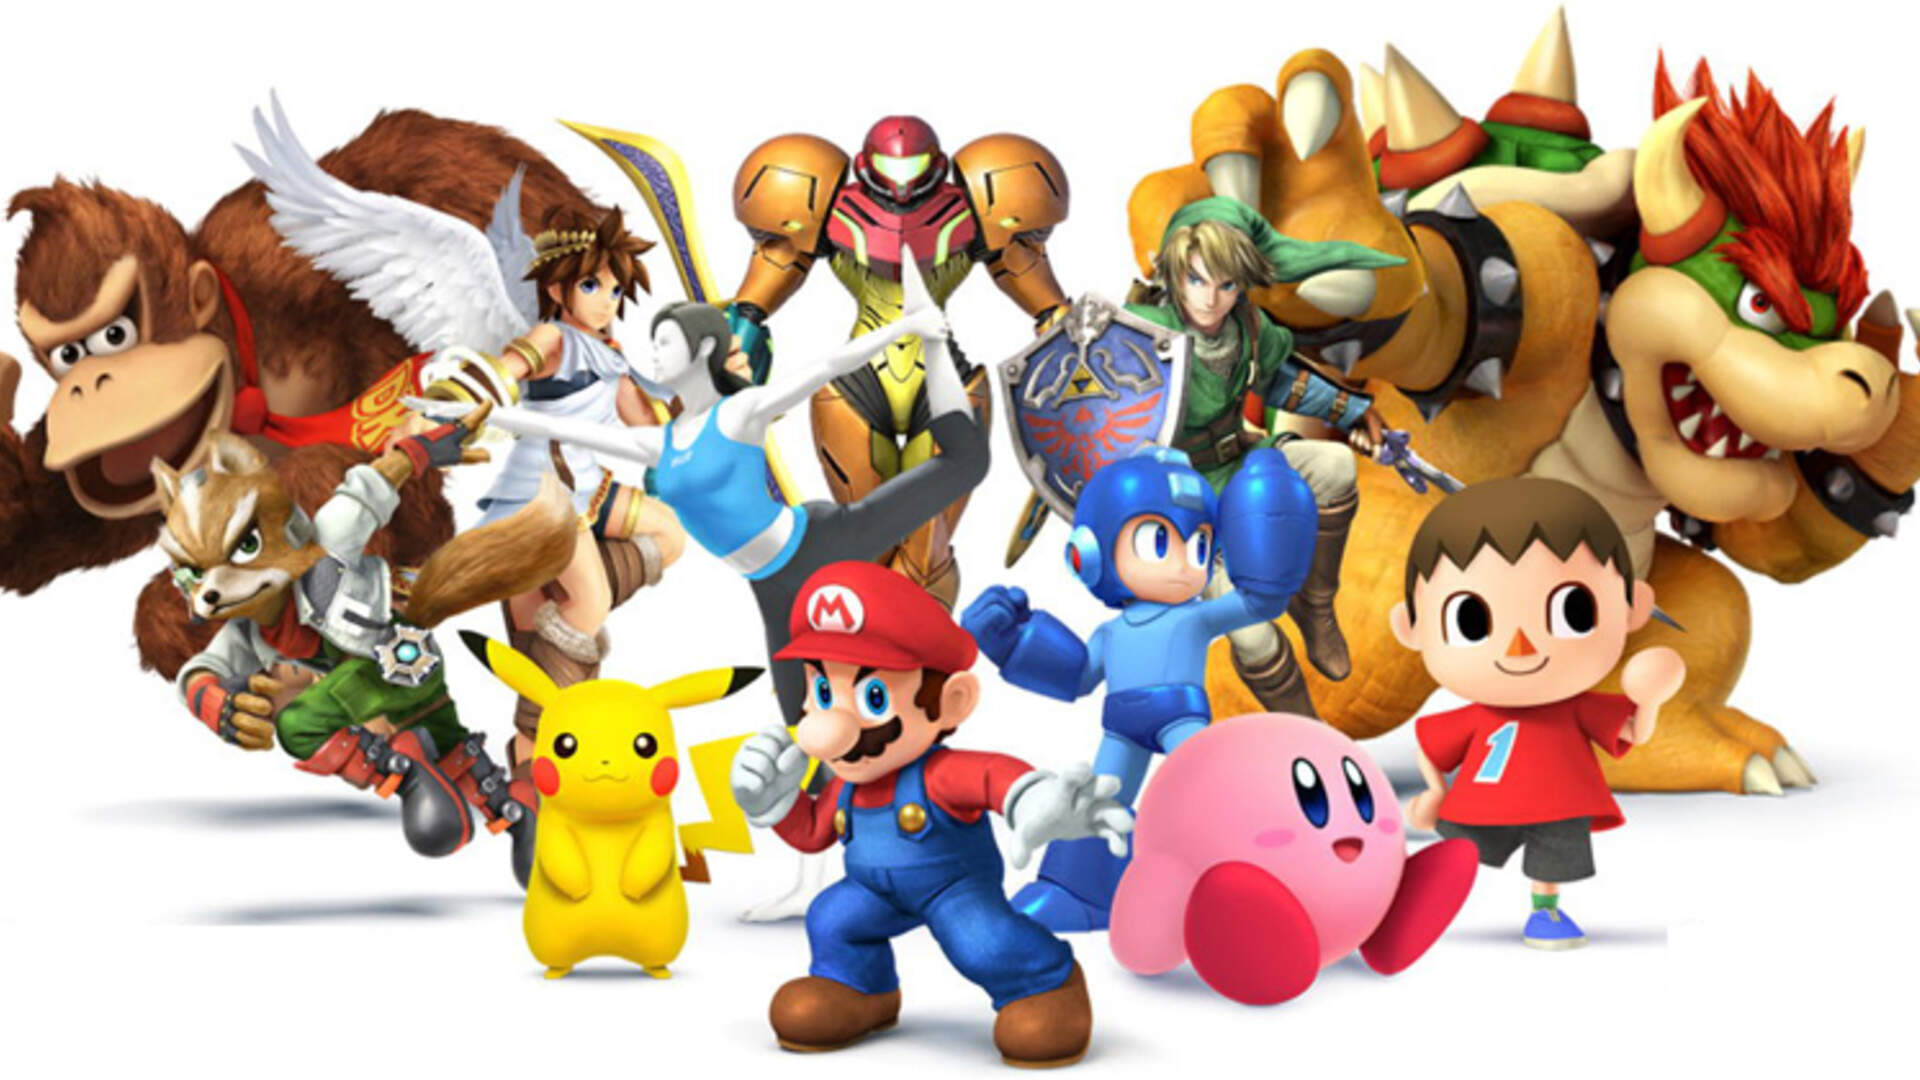 Super Smash Bros. 3DS Strategy Guide: Beginner Tips, Best Unlocks, and Move Tactics for Every Character